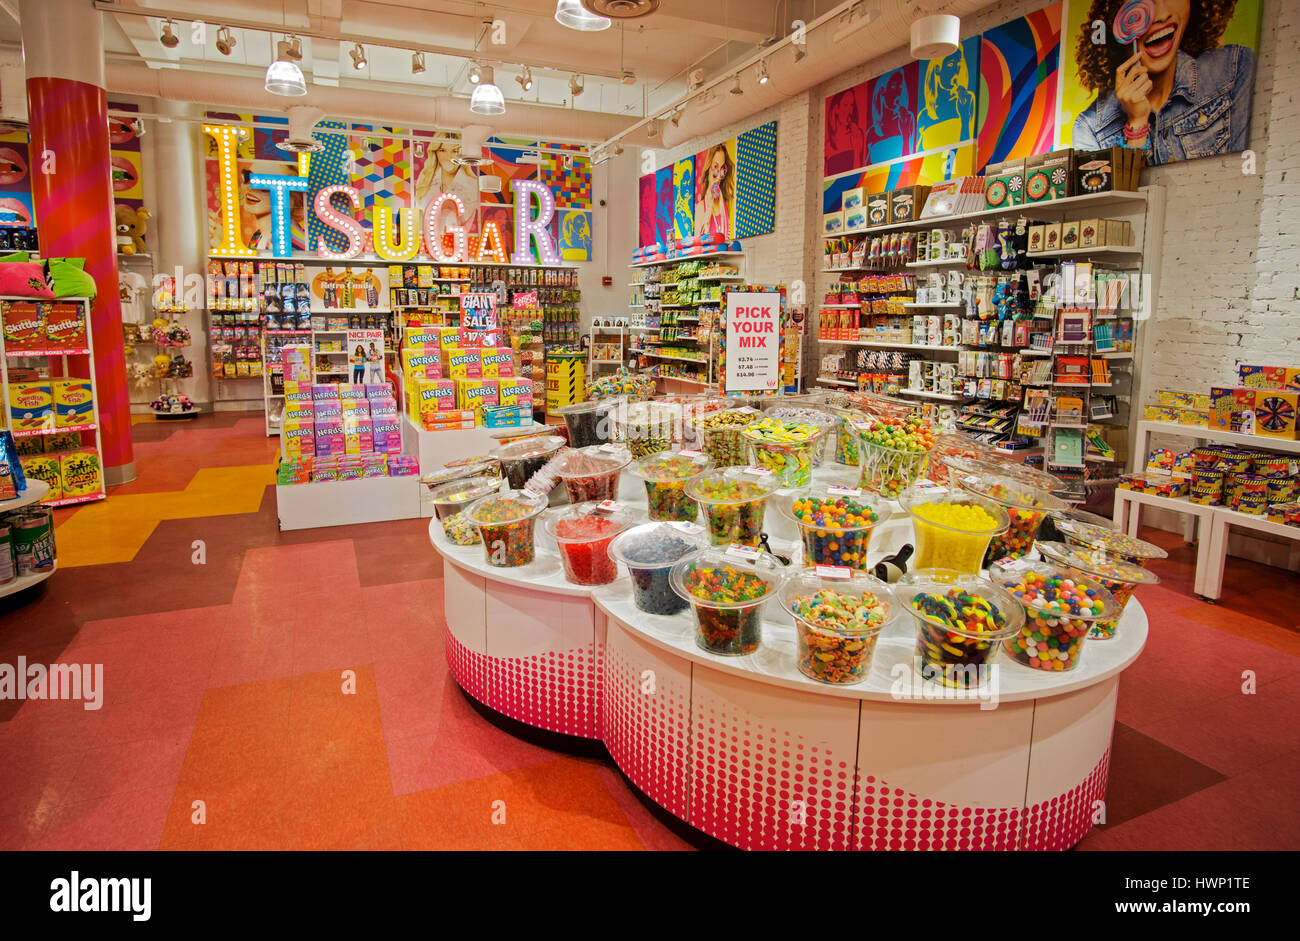 A general view of the interior of It'sugar, a candy and novelty shop on Broadway in Greenwich Village, New York - Stock Image